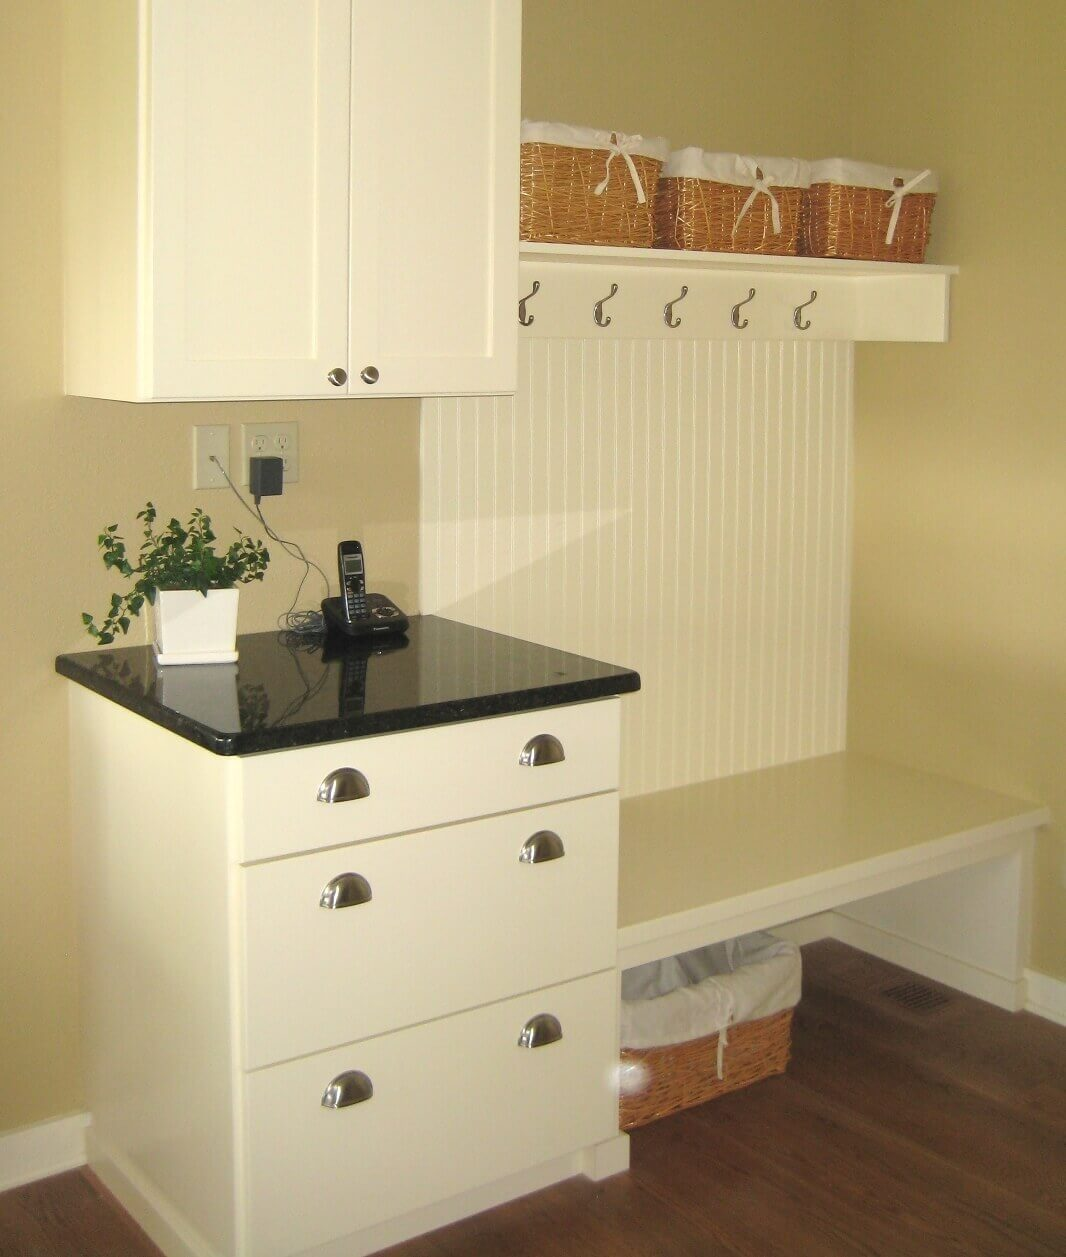 An informal side entry serves as a message center with drawers, baskets, hooks, and shelves to keep things organized.